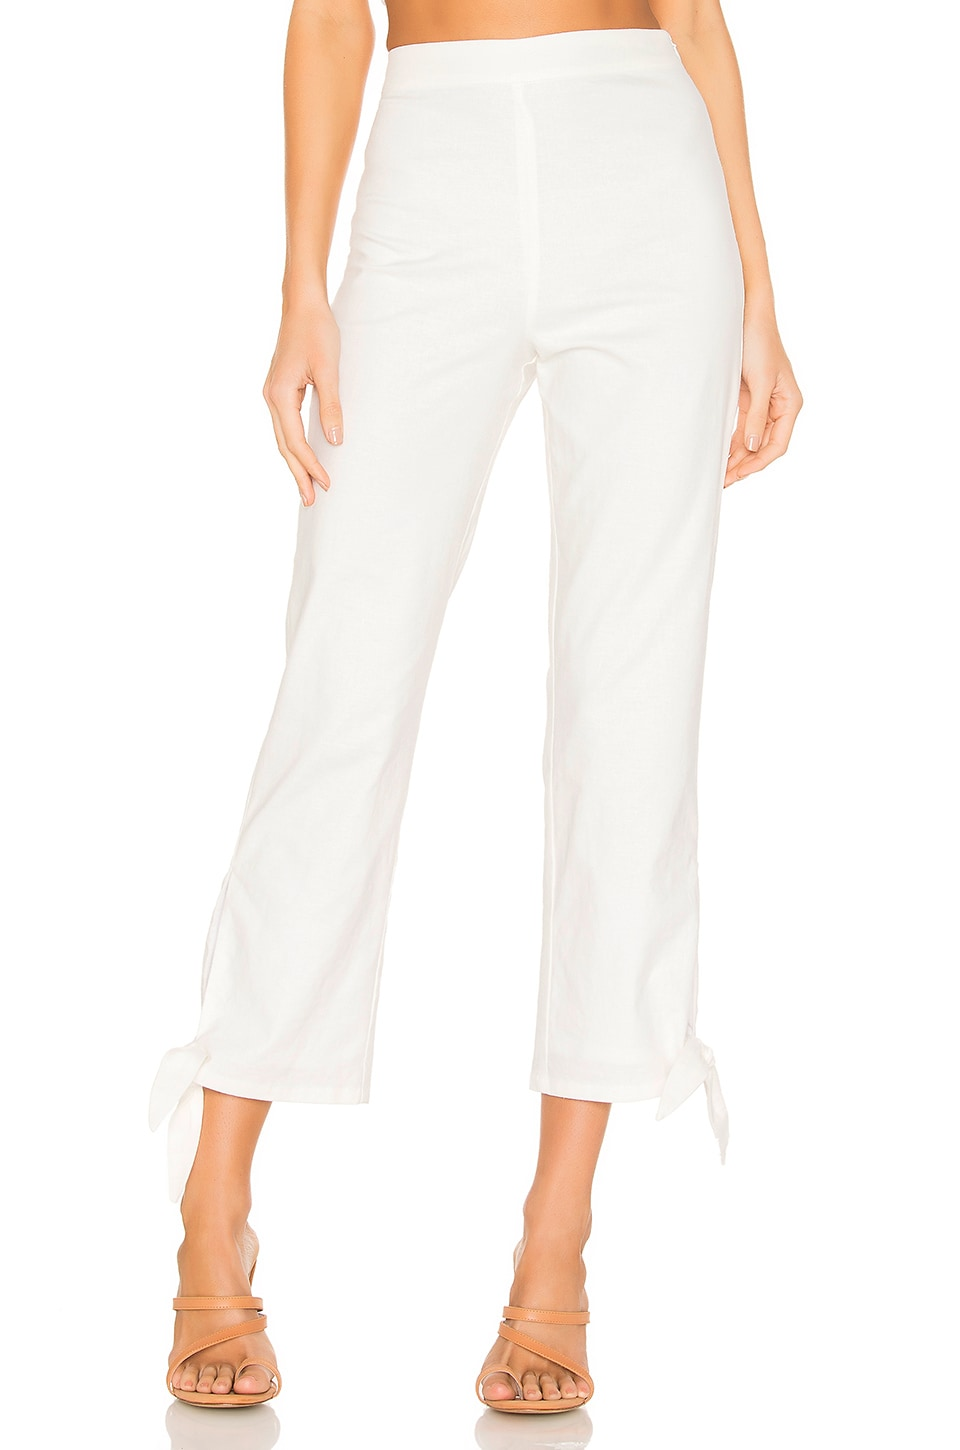 MAJORELLE Brexley Pants in White